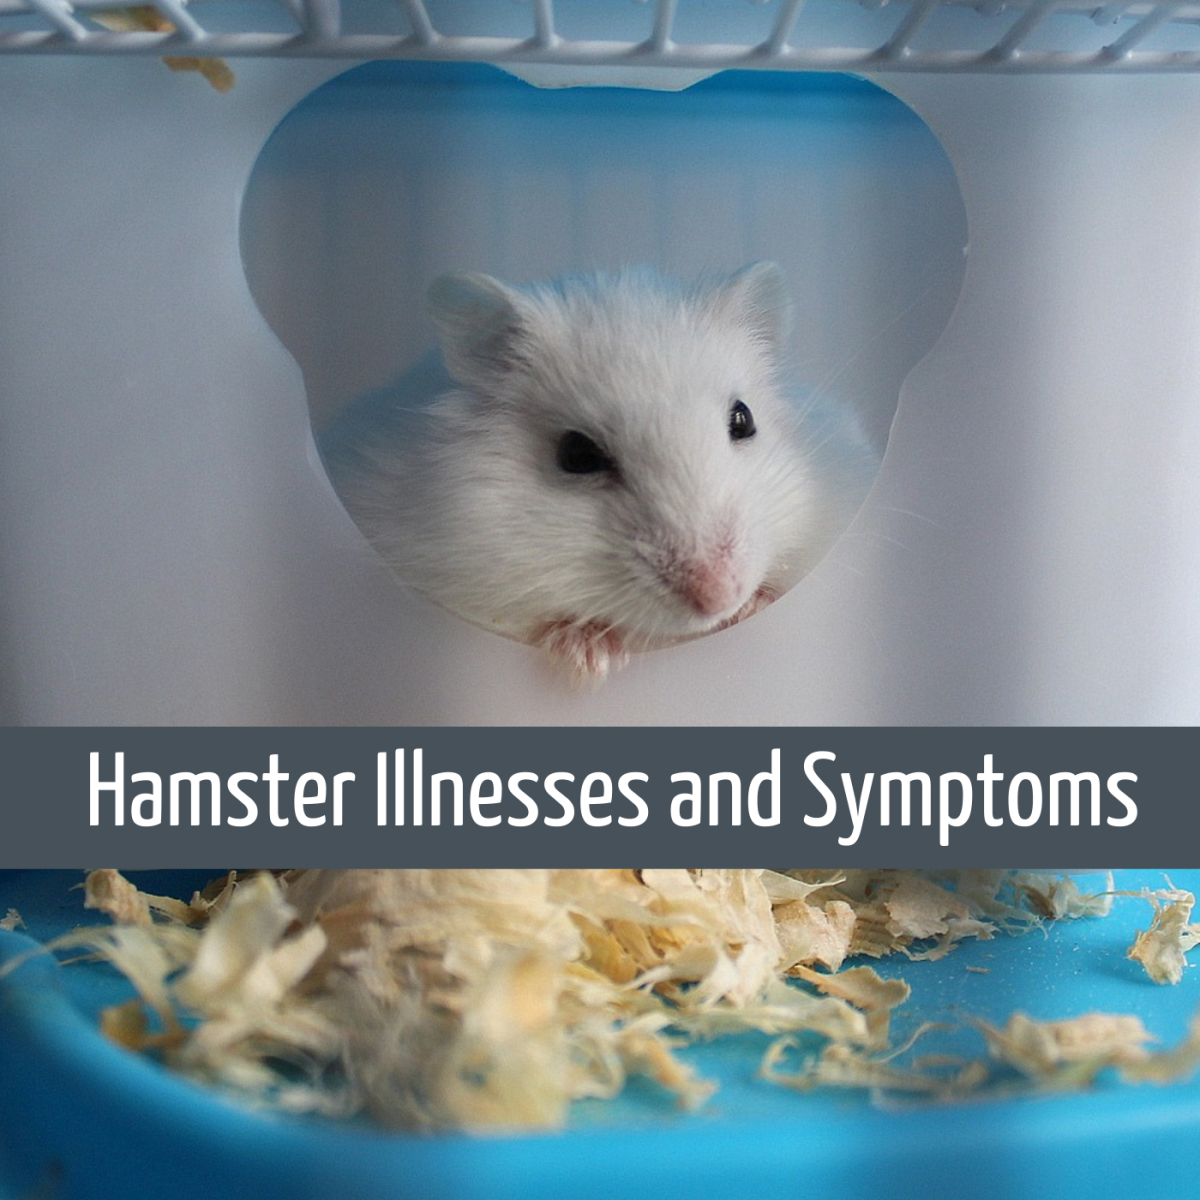 Is My Hamster Sick? Symptoms of Illness or Poor Health